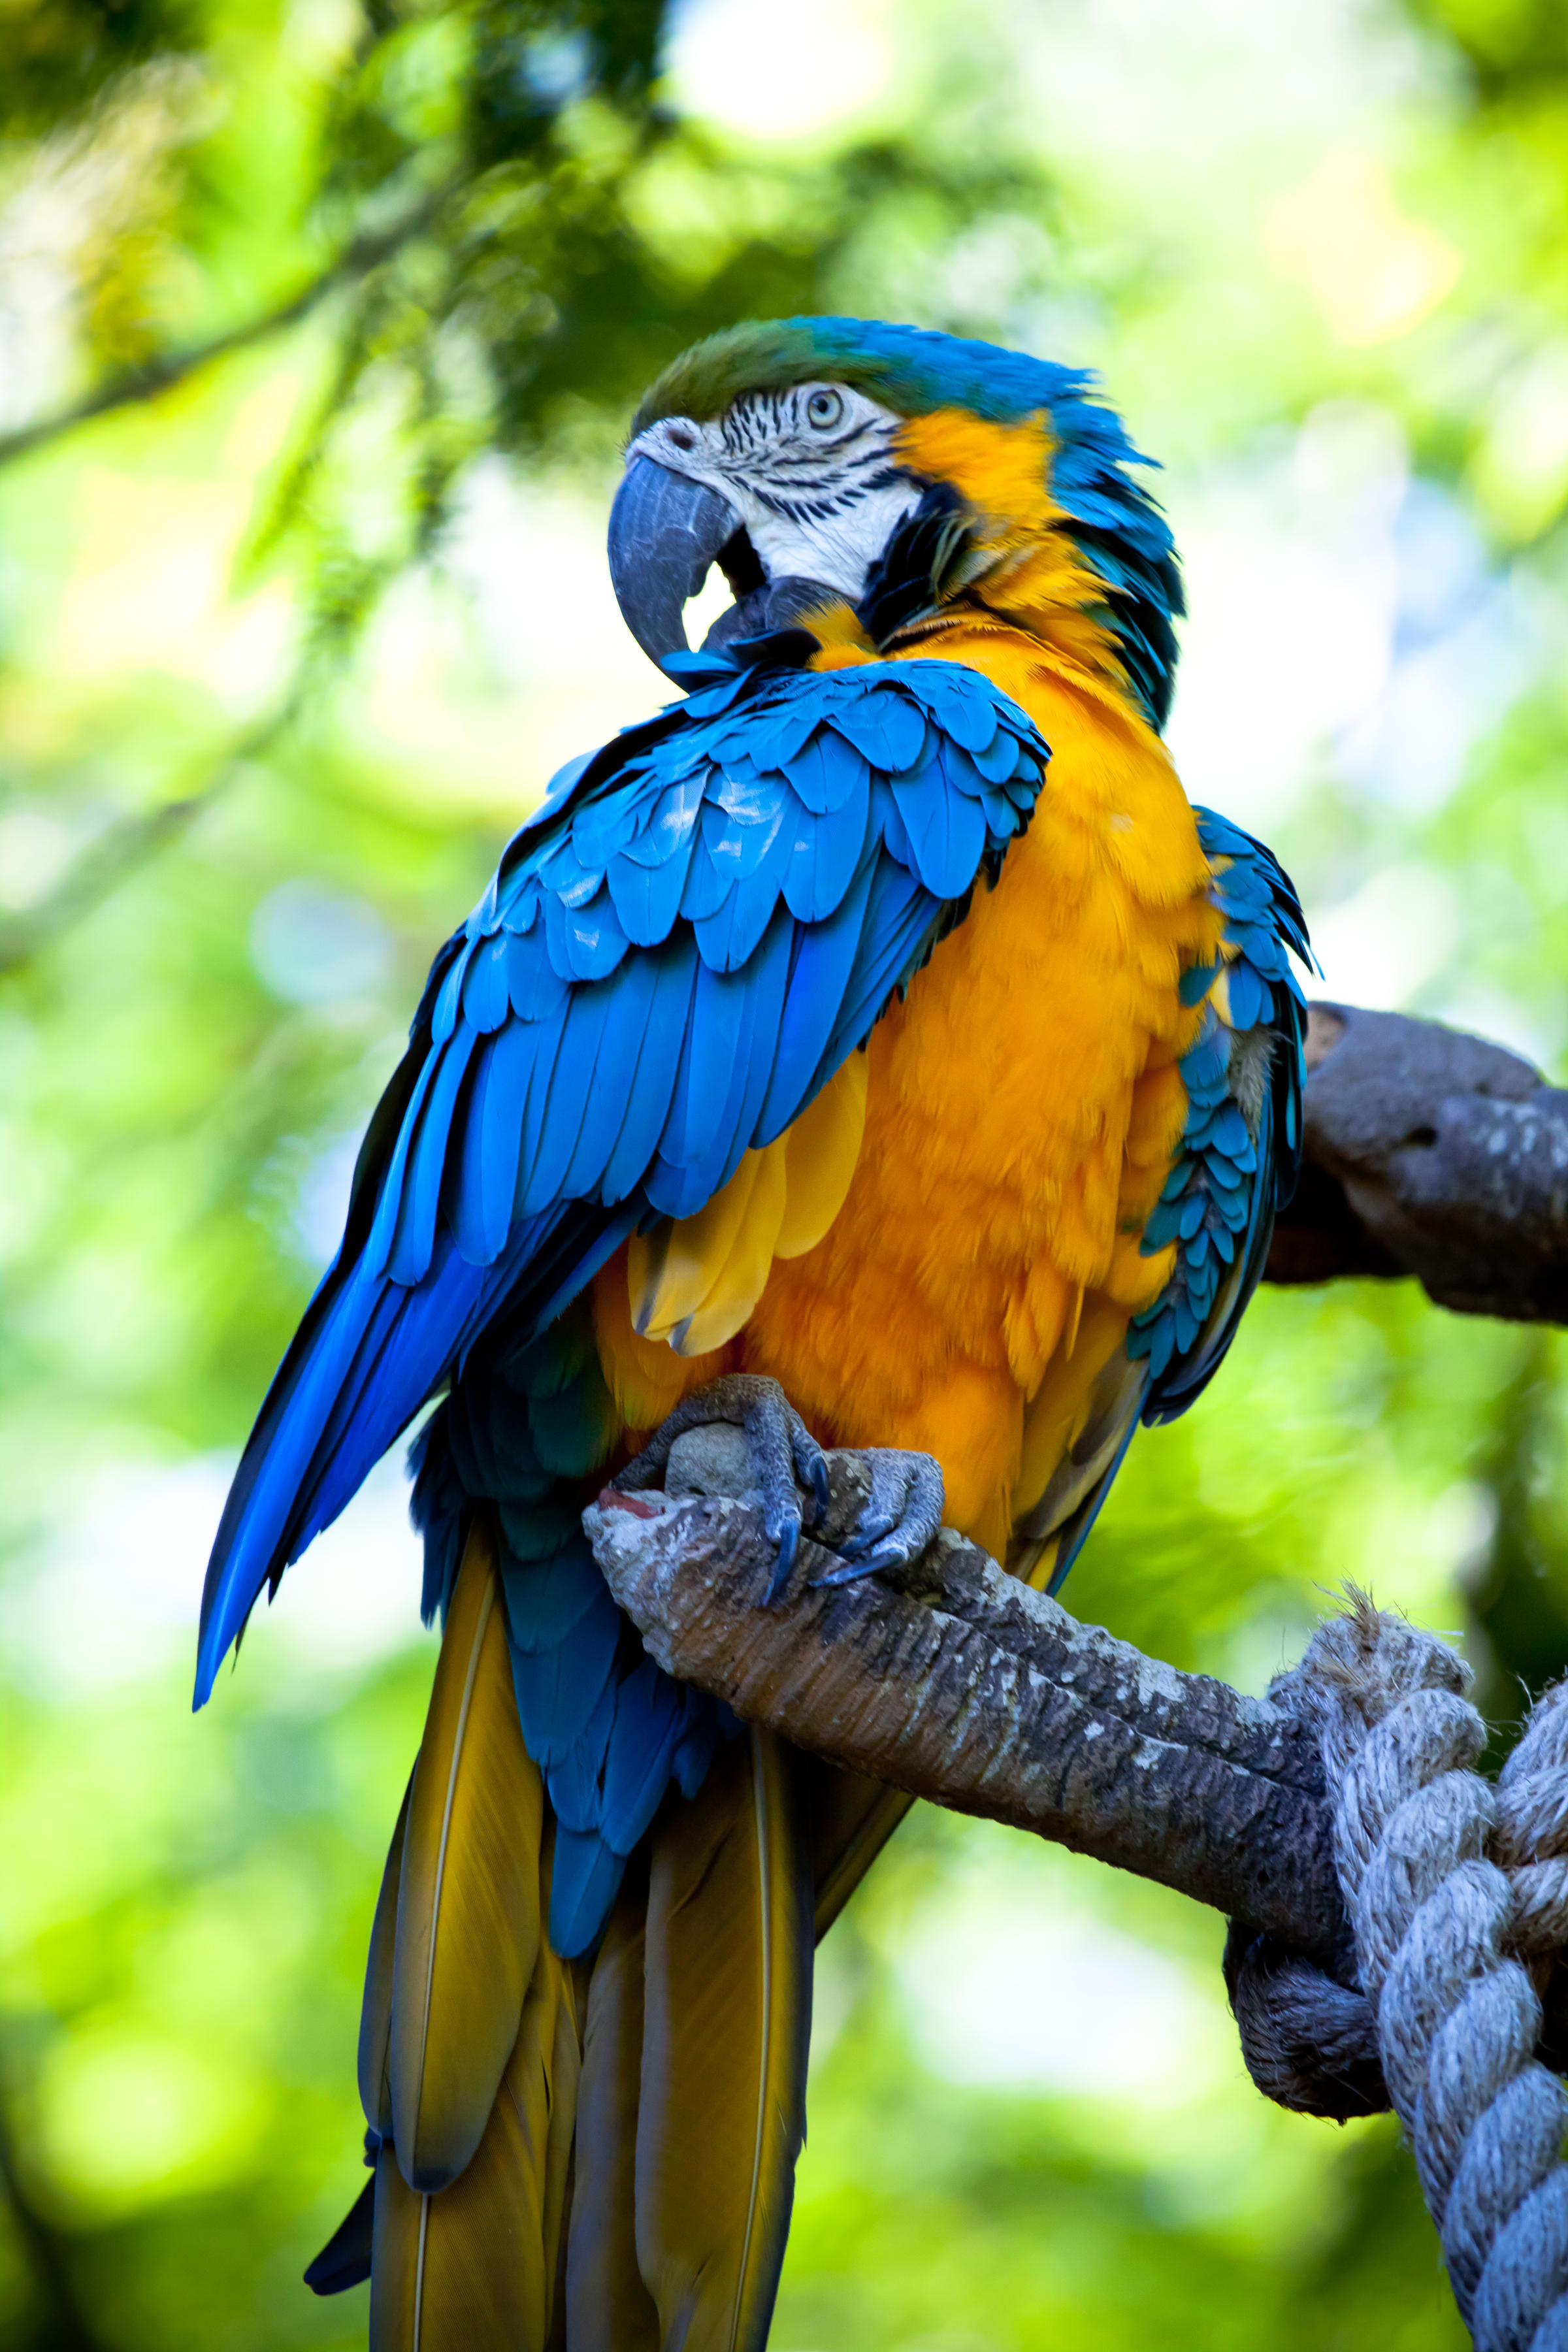 107459 download wallpaper Animals, Macaw, Parrots, Bird, Bright, Multicolored, Motley screensavers and pictures for free